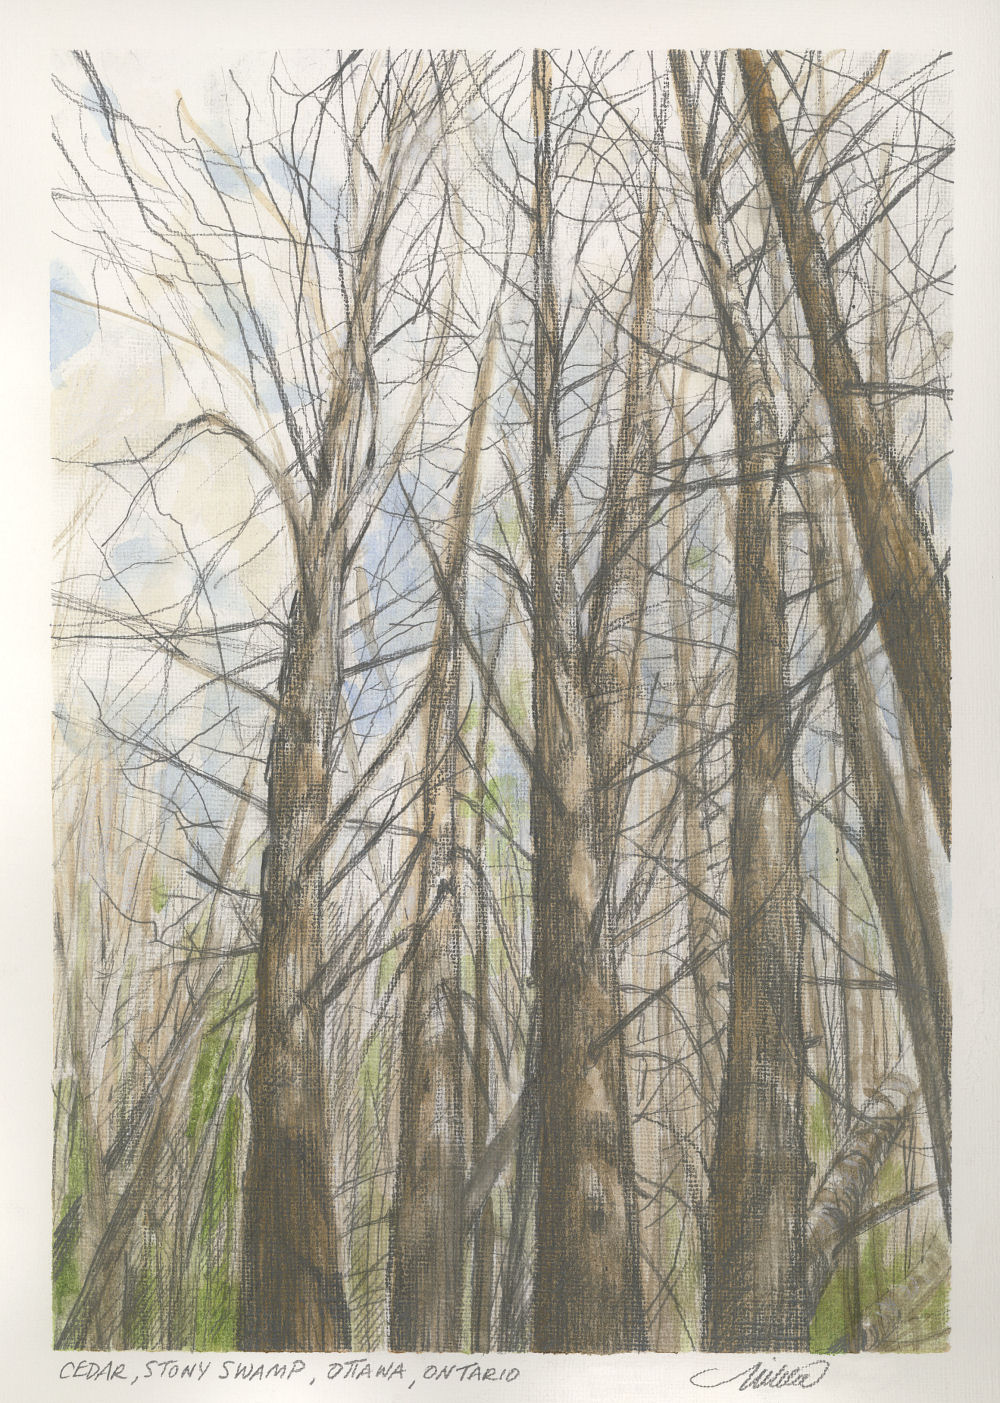 Cedar, Stony Swamp Ottawa, ON, Canada 12H x 9W inch watercolor and graphite on 40lb cold-pressed premium